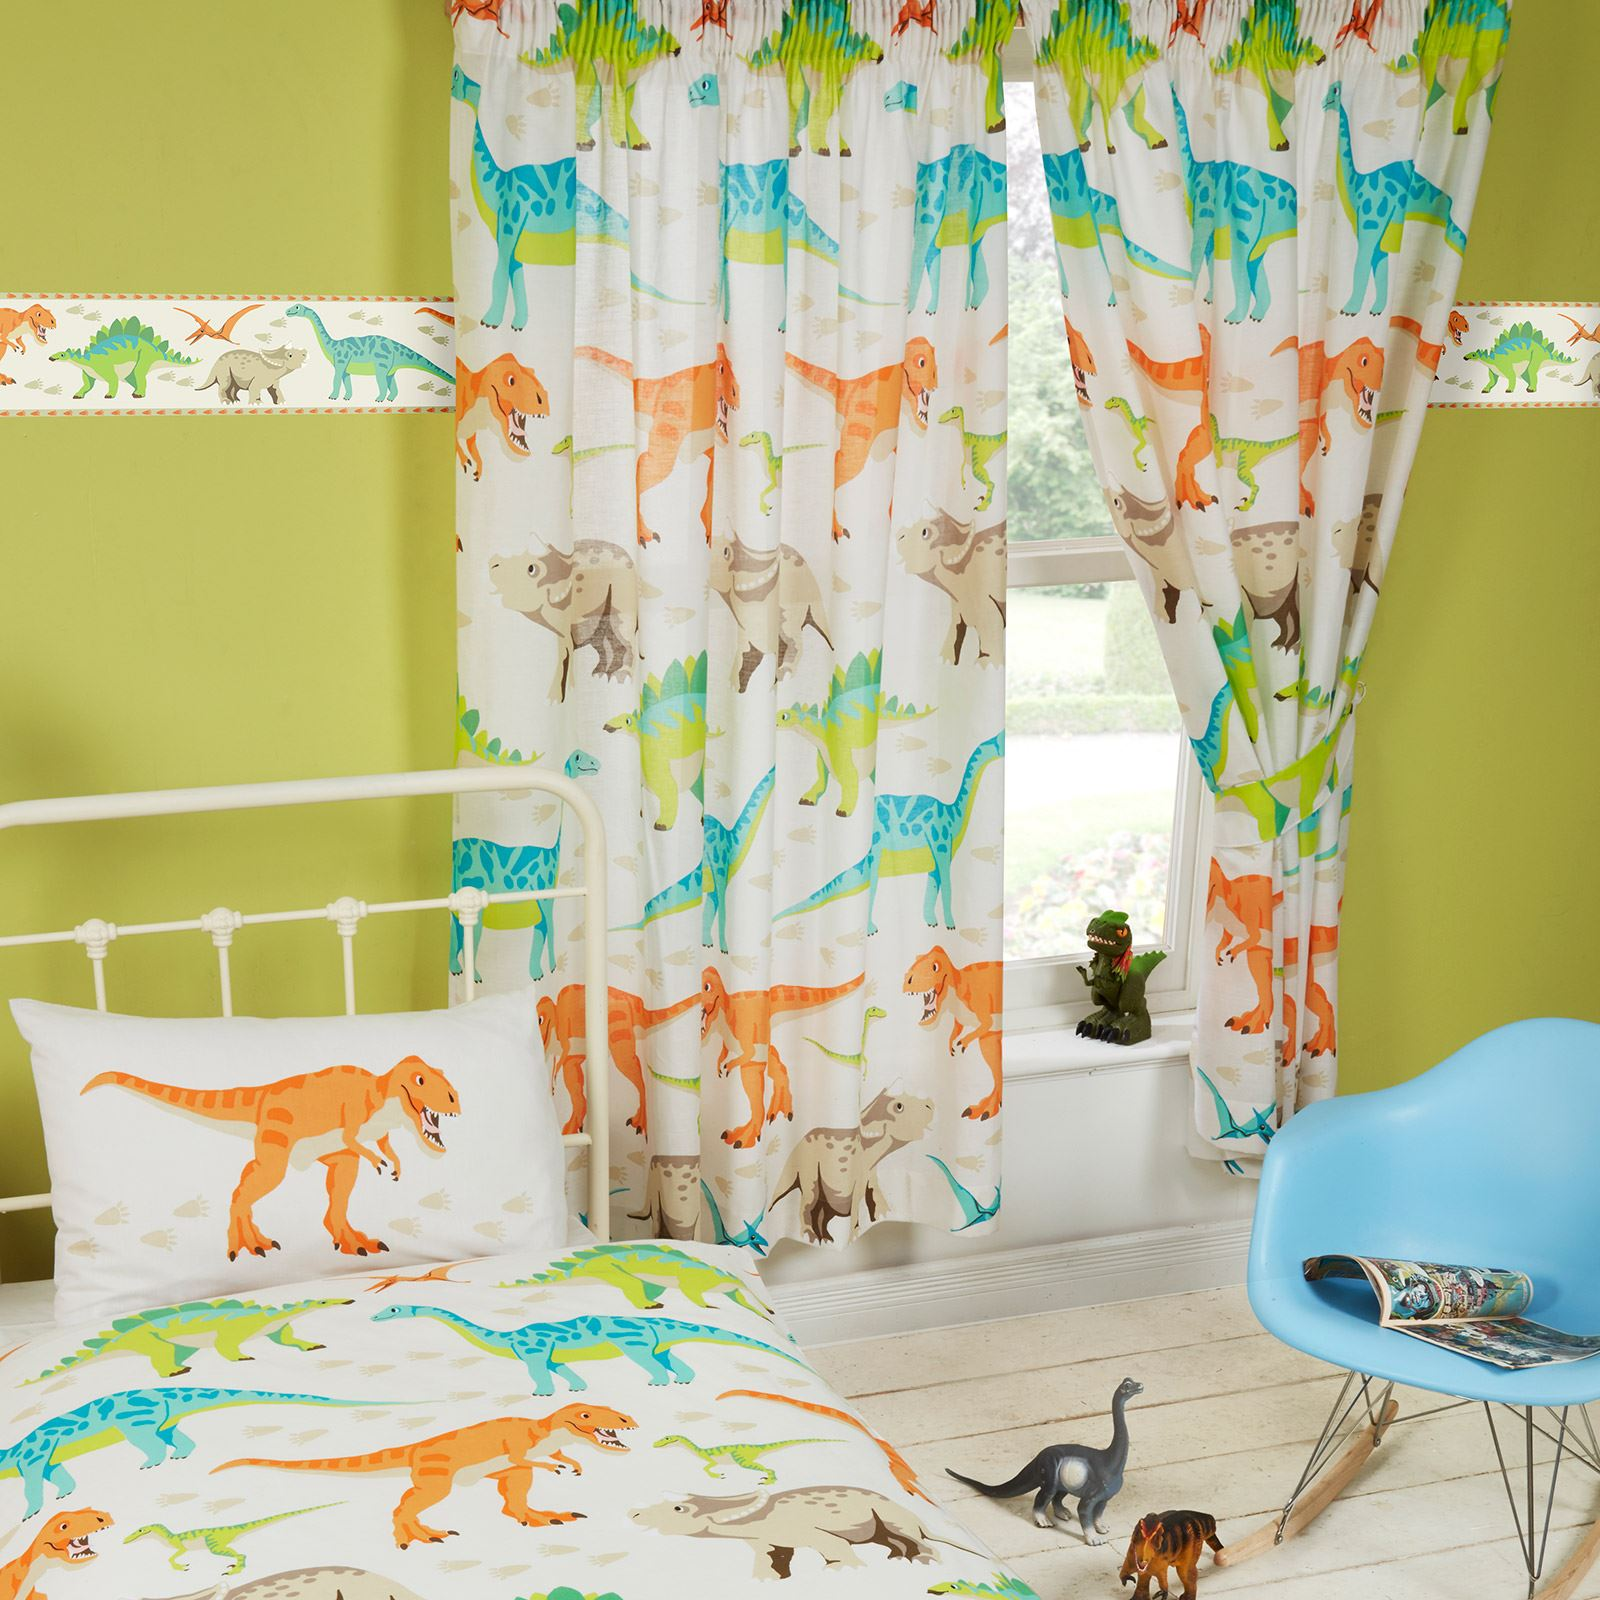 Brighten up your bathroom with unique Boys Dinosaur Shower Curtains from CafePress! From modern curtain designs to patterned black and white shower curtains, you'll find the perfect one for you!